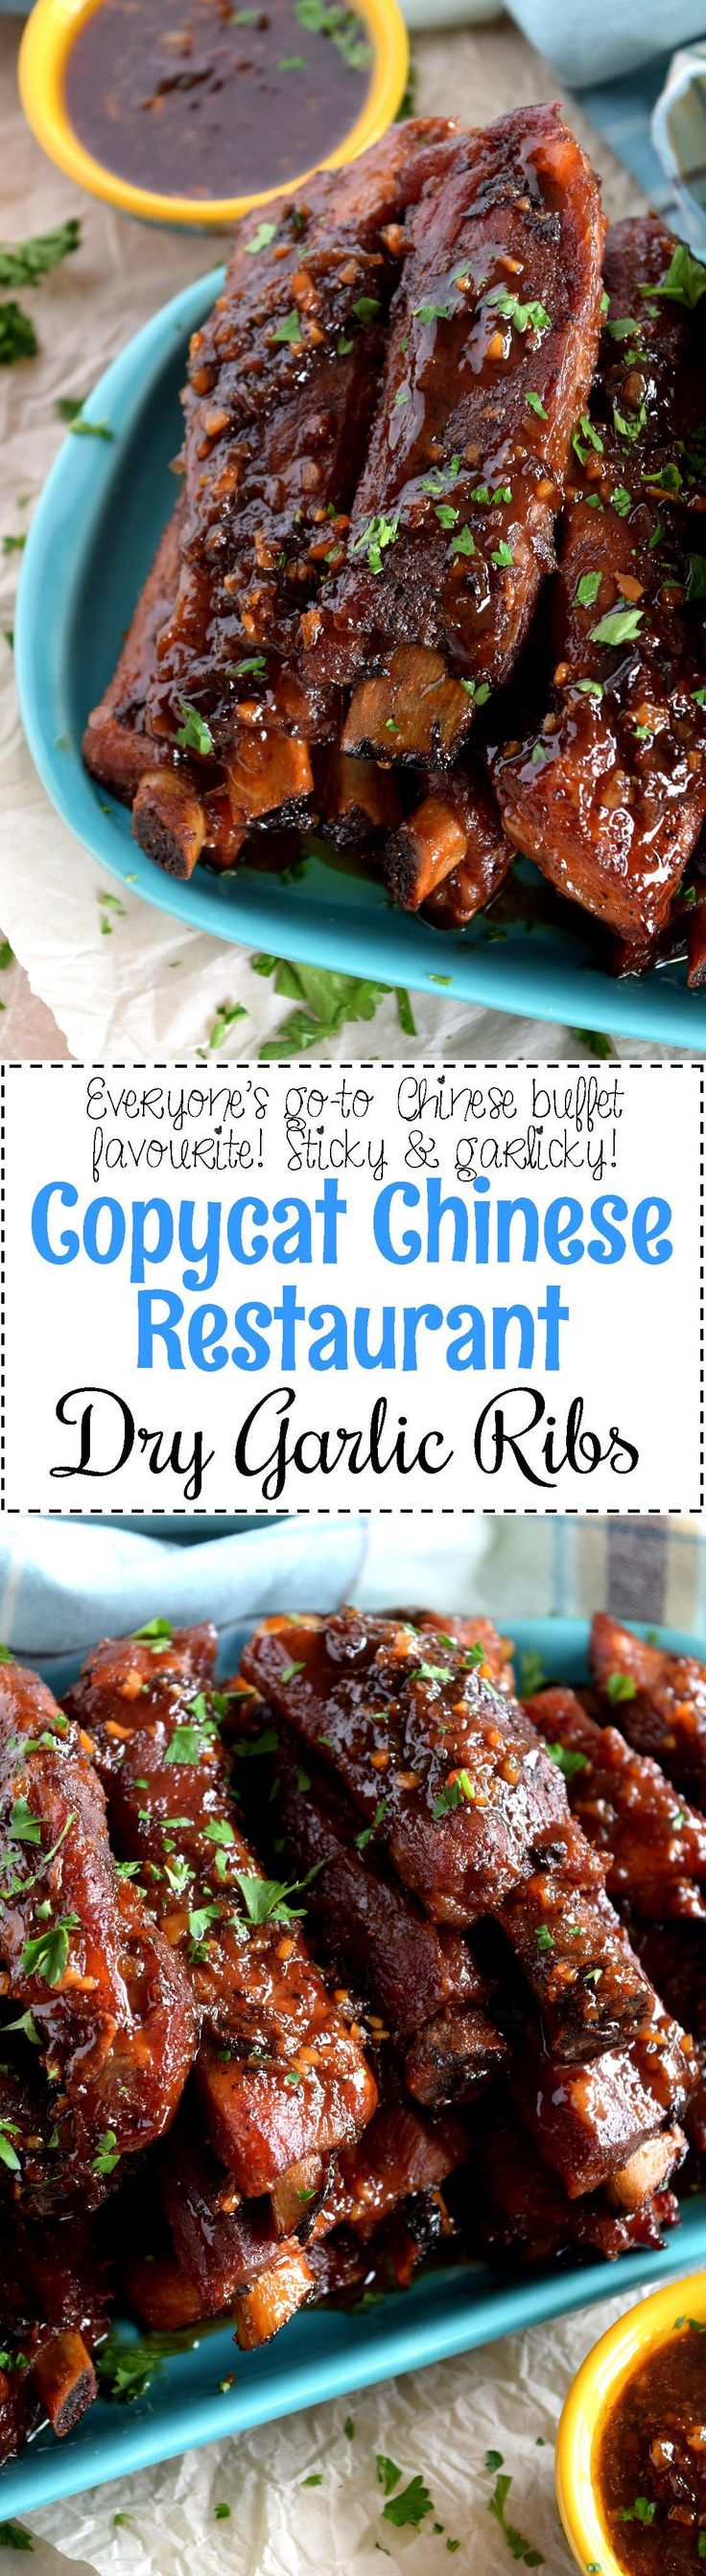 Copycat Chinese Restaurant Dry Garlic Ribs - Copycat Chinese Restaurant Dry Garlic Ribs are a nostalgic buffet favourite.  Every 80s and 90s Chinese buffet included these delicious ribs and this is a make-at-home recipe that's better than the original!